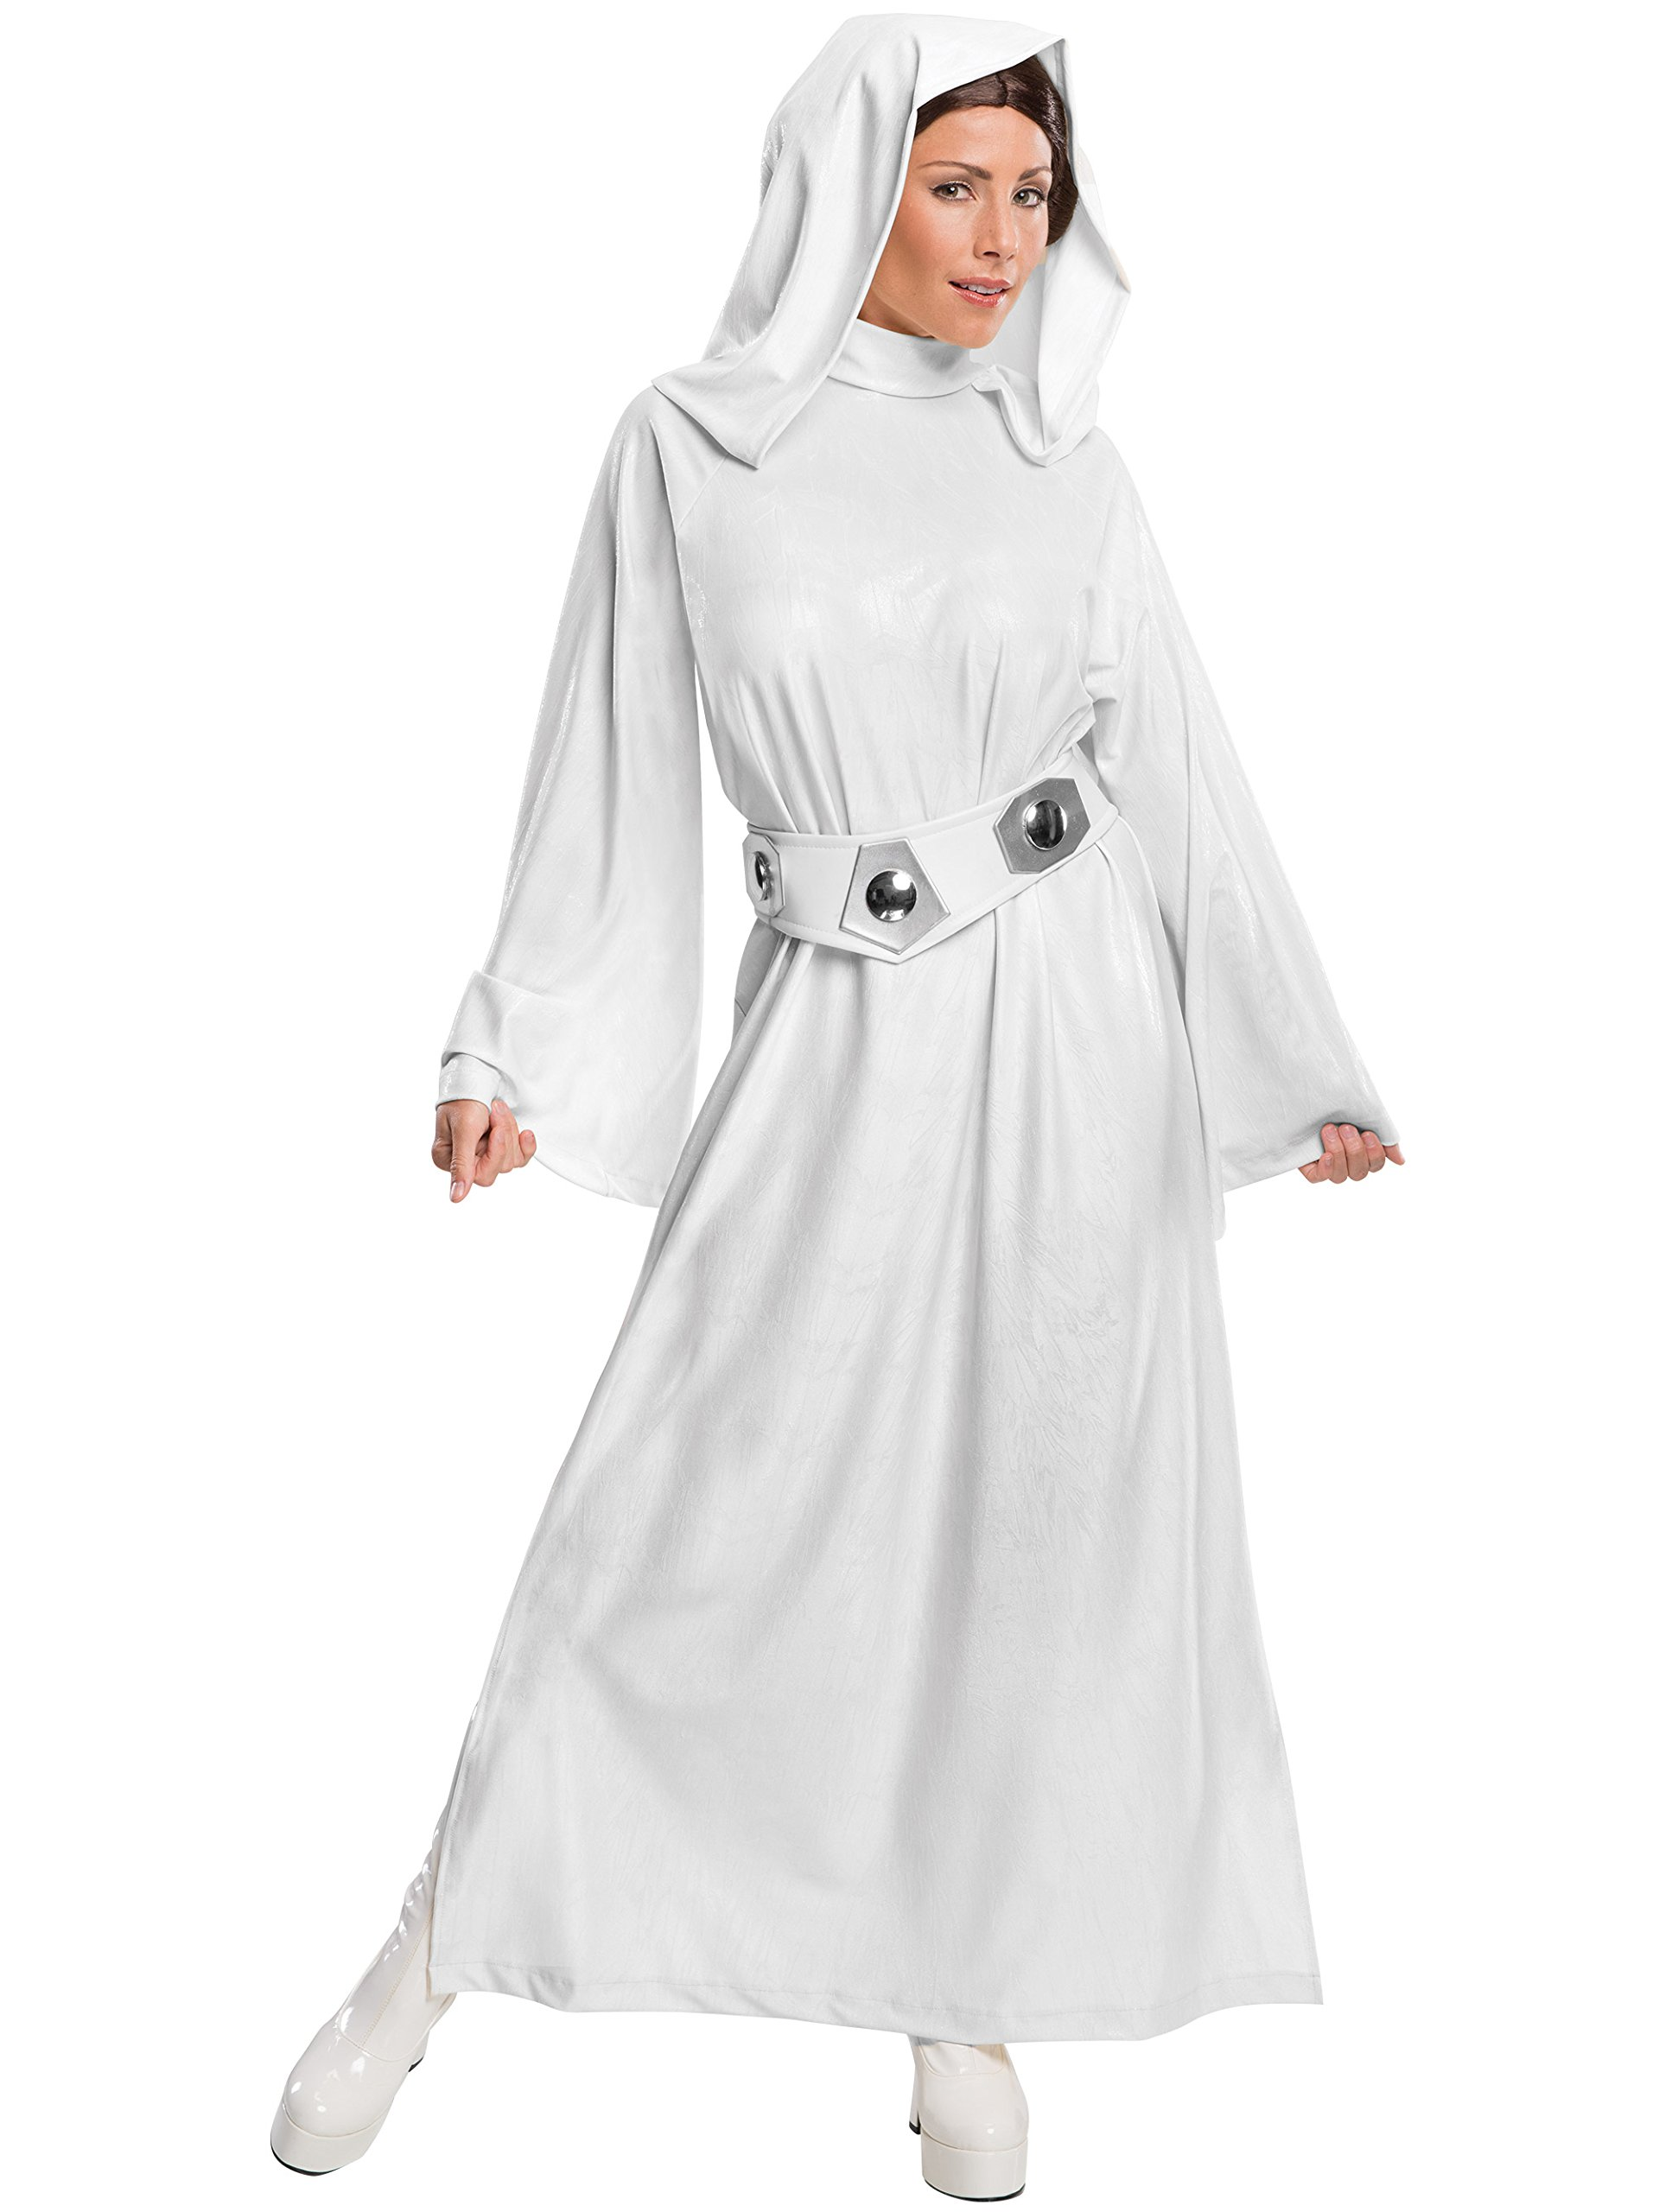 Rubie's Women's Star Wars Classic Deluxe Princess Leia Costume,White,Large